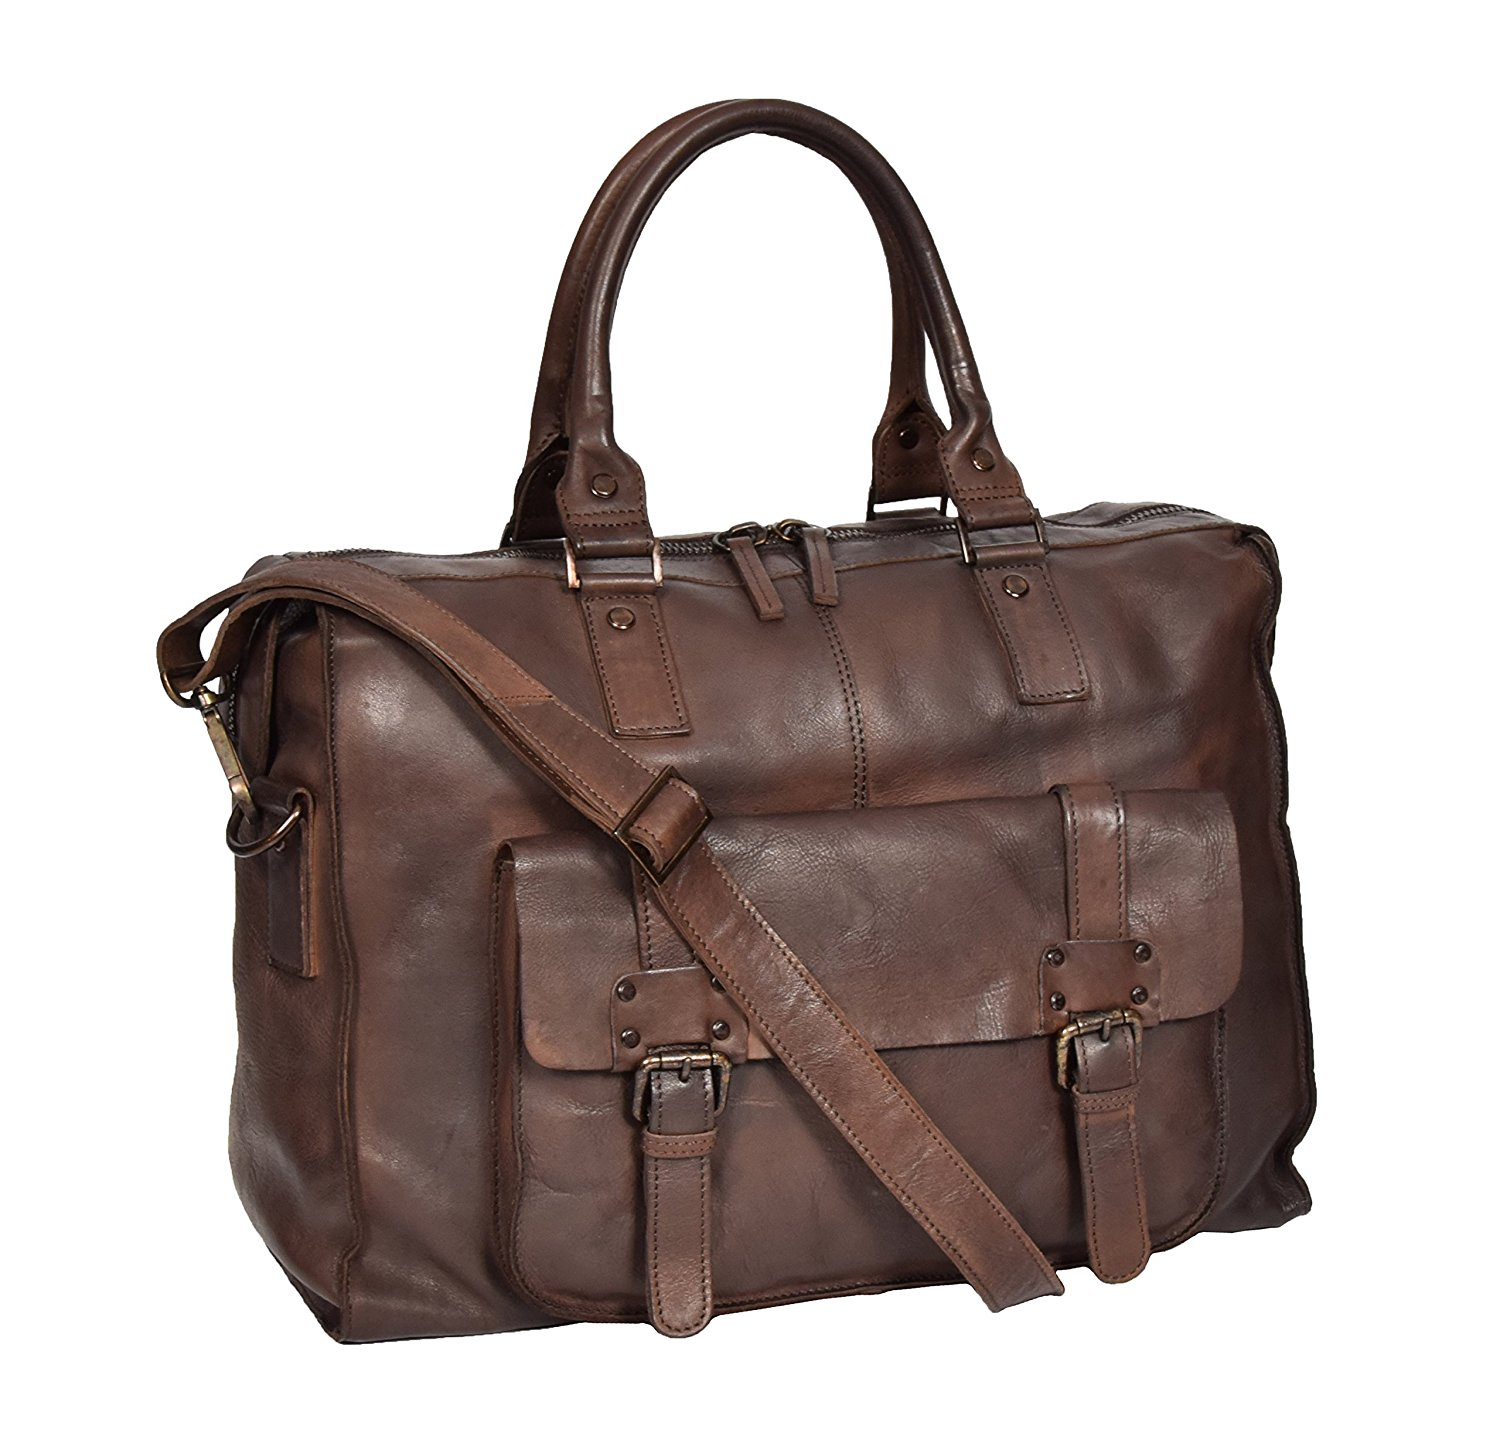 Real Leather Weekend Holdall VINTAGE Brown Travel Cabin Overnight Bag Bali